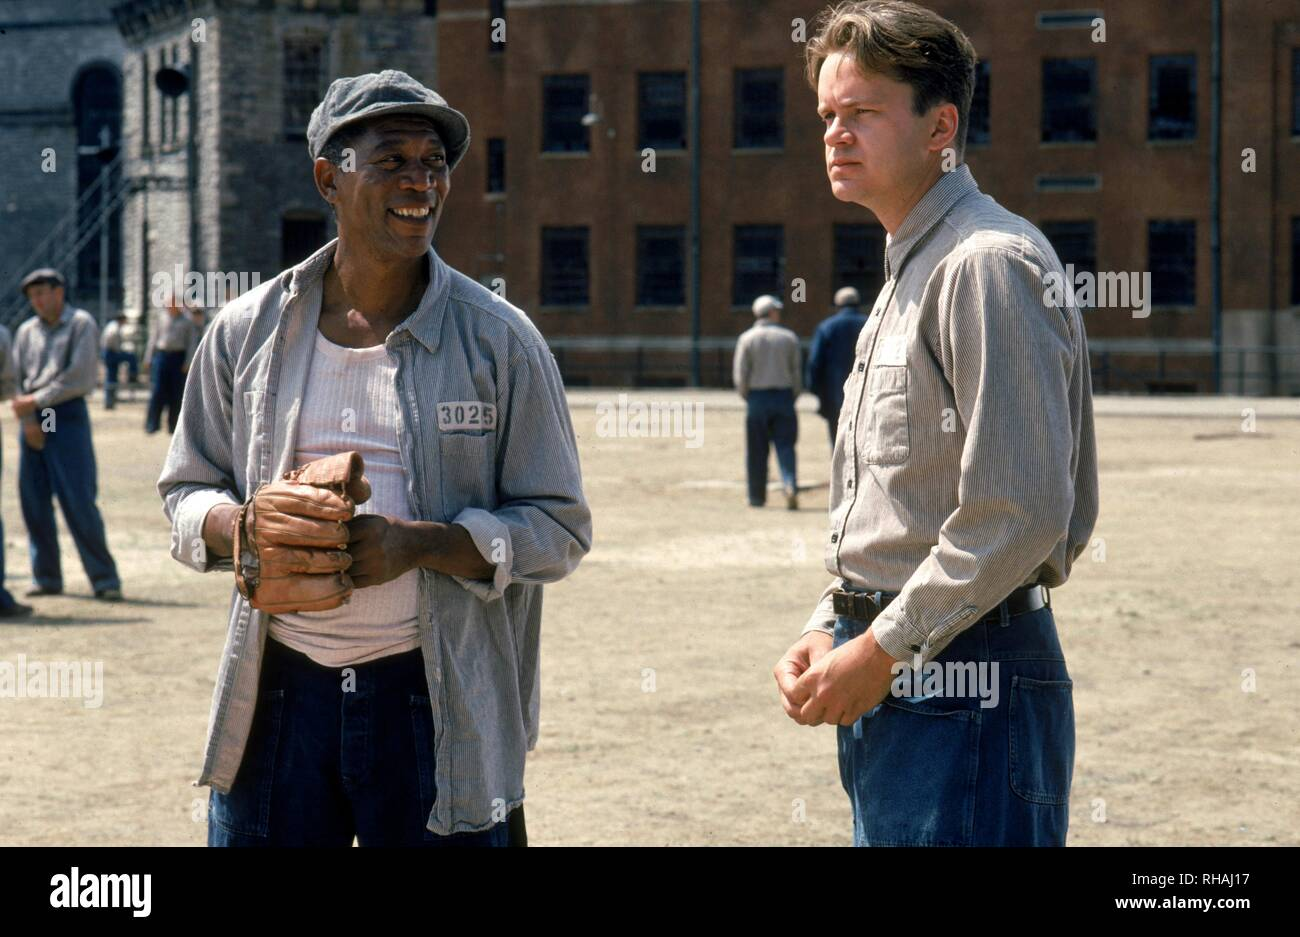 THE SHAWSHANK REDEMPTION, MORGAN FREEMAN , TIM ROBBINS, 1994 - Stock Image